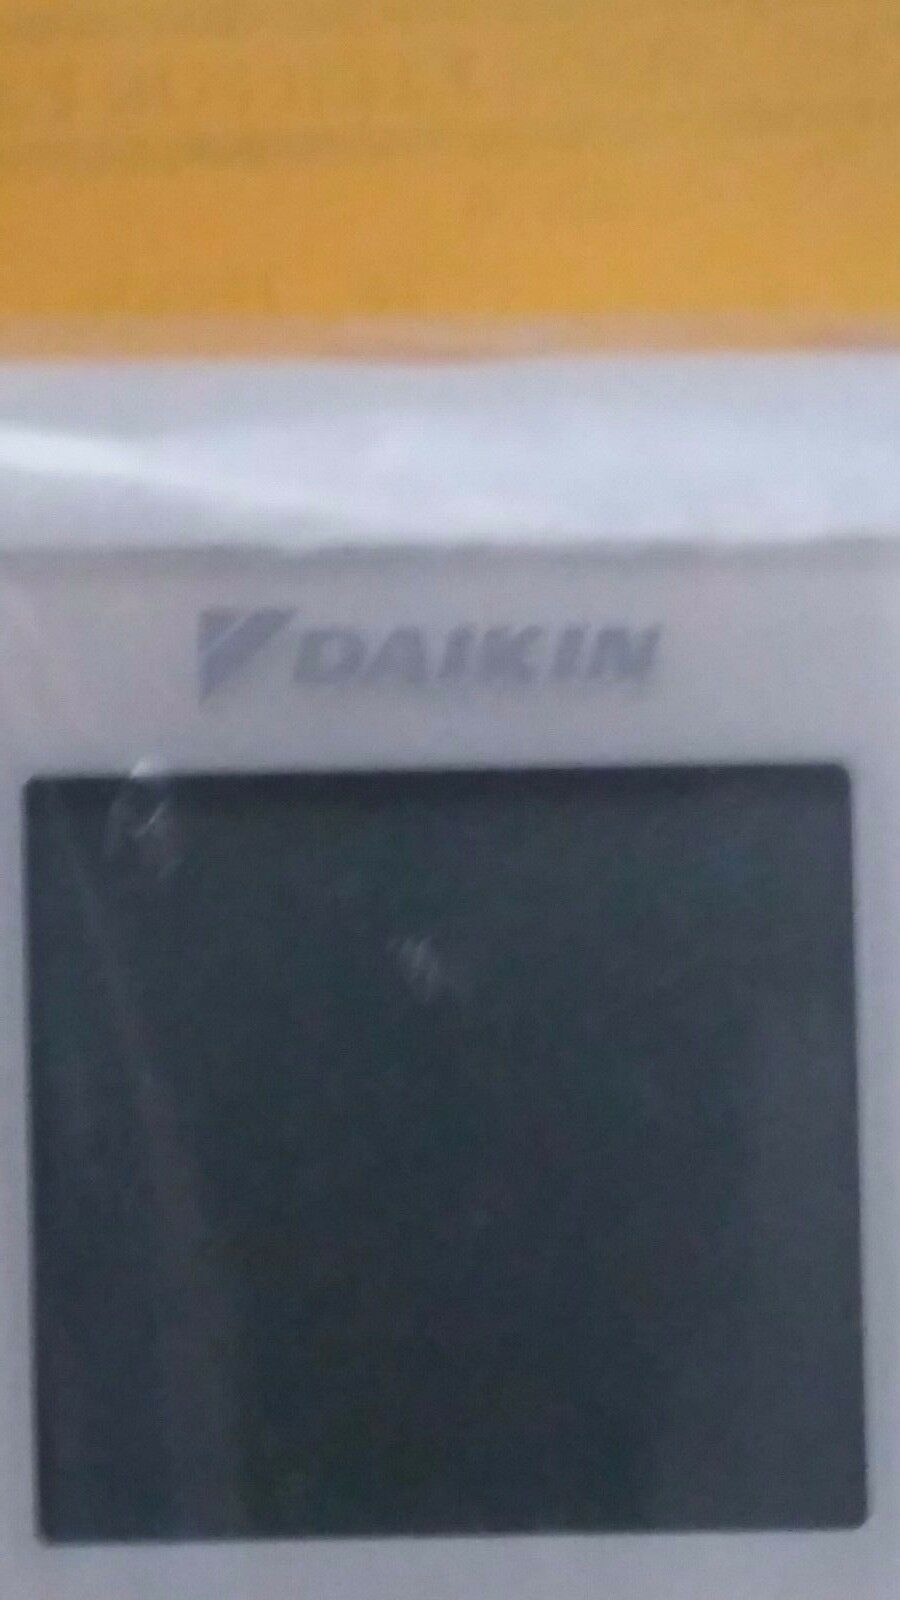 Daikin  Remote Control ARC 452A19 and filters